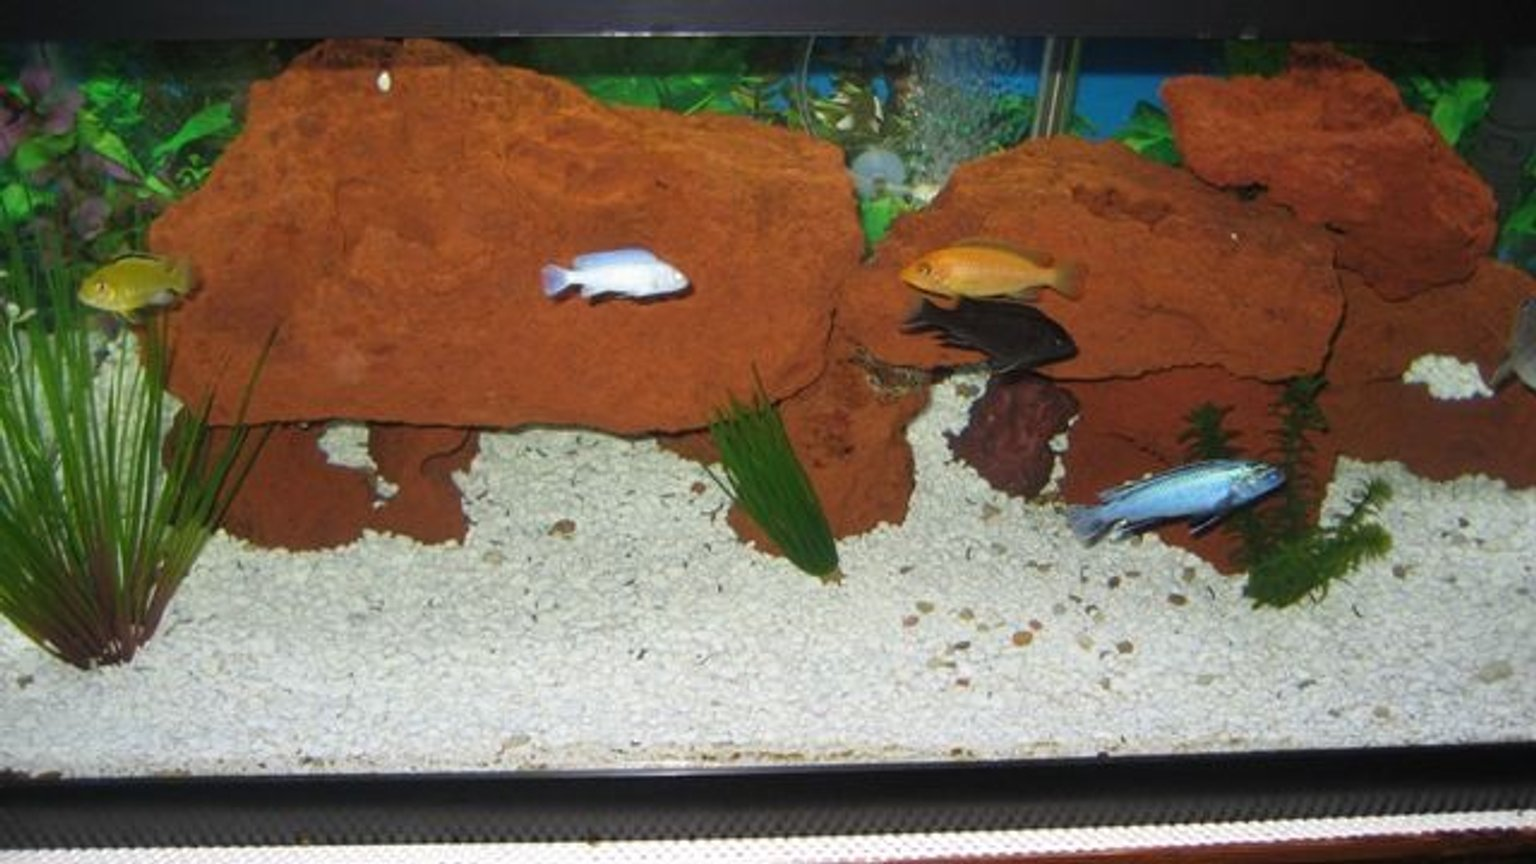 150 gallons freshwater fish tank (mostly fish and non-living decorations) - My old 40g African tank with Lava Rock